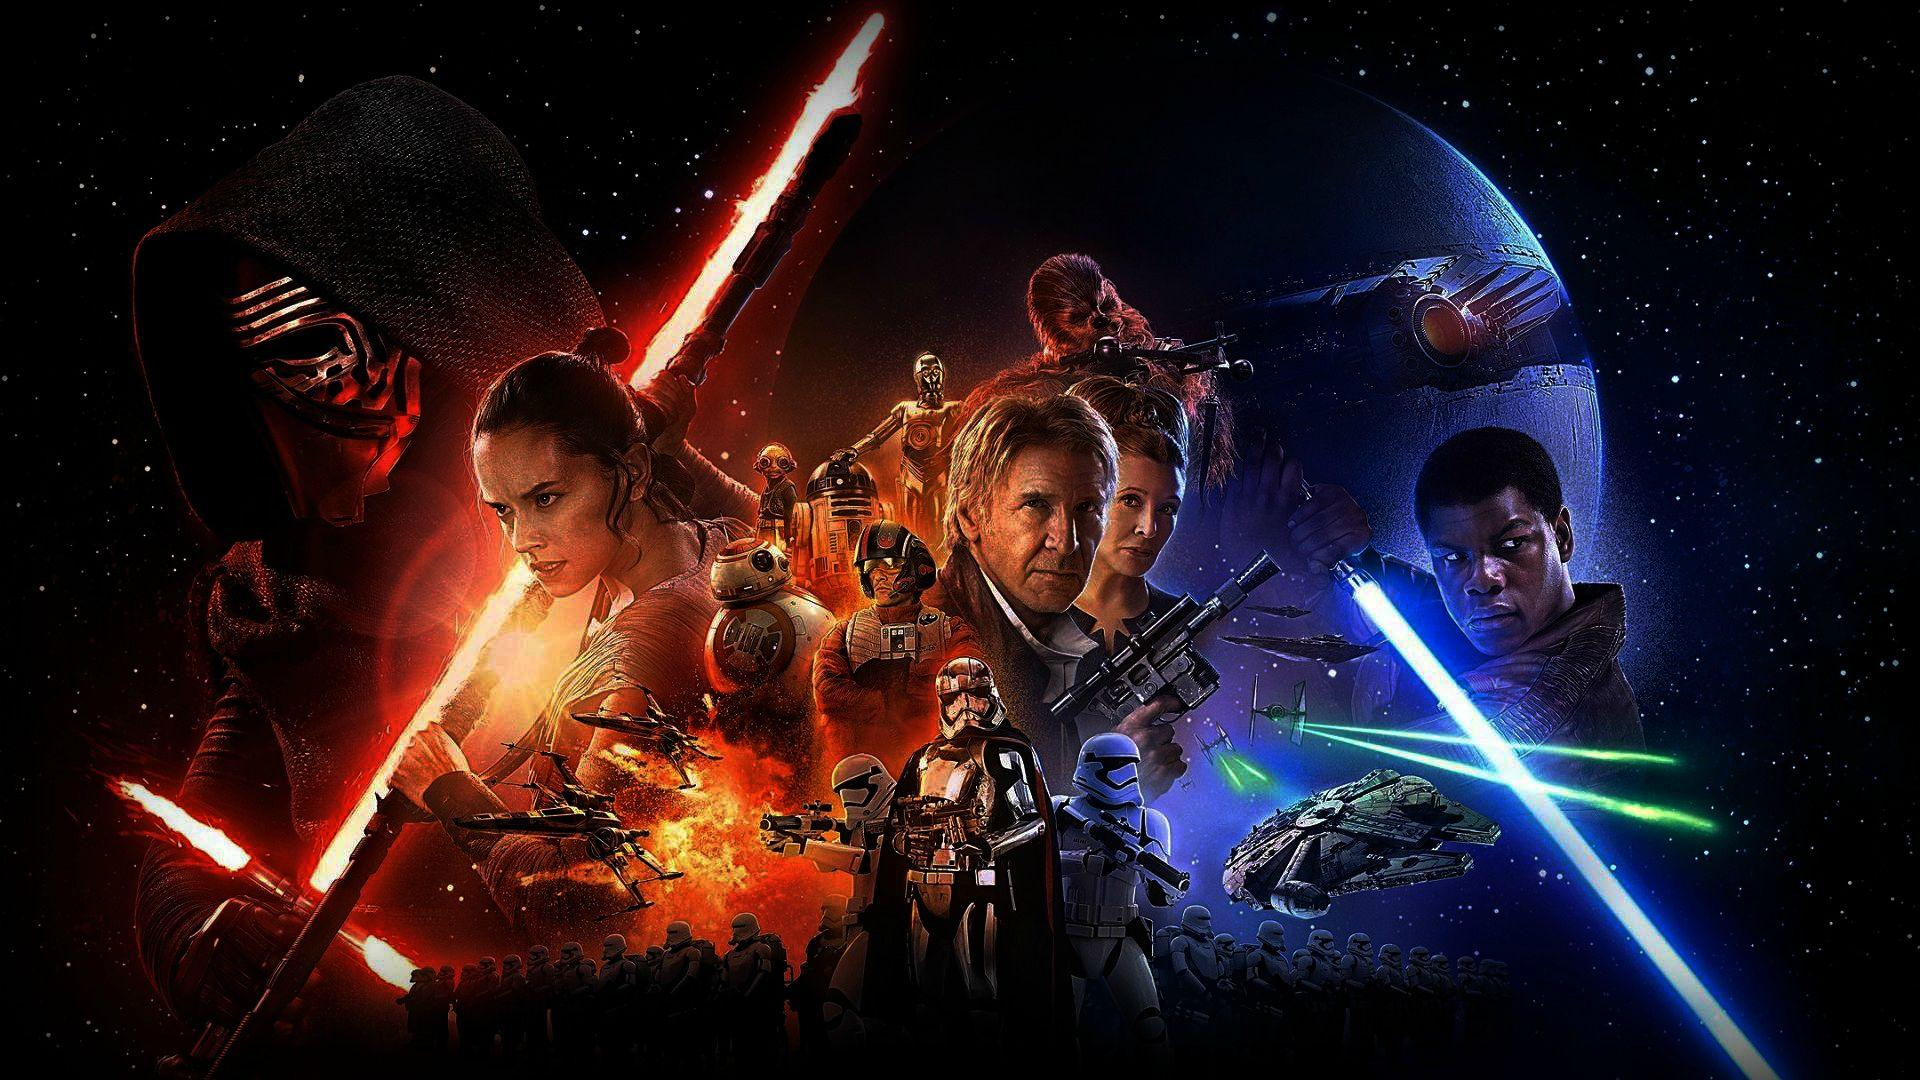 Star Wars: The Obsession Awakens